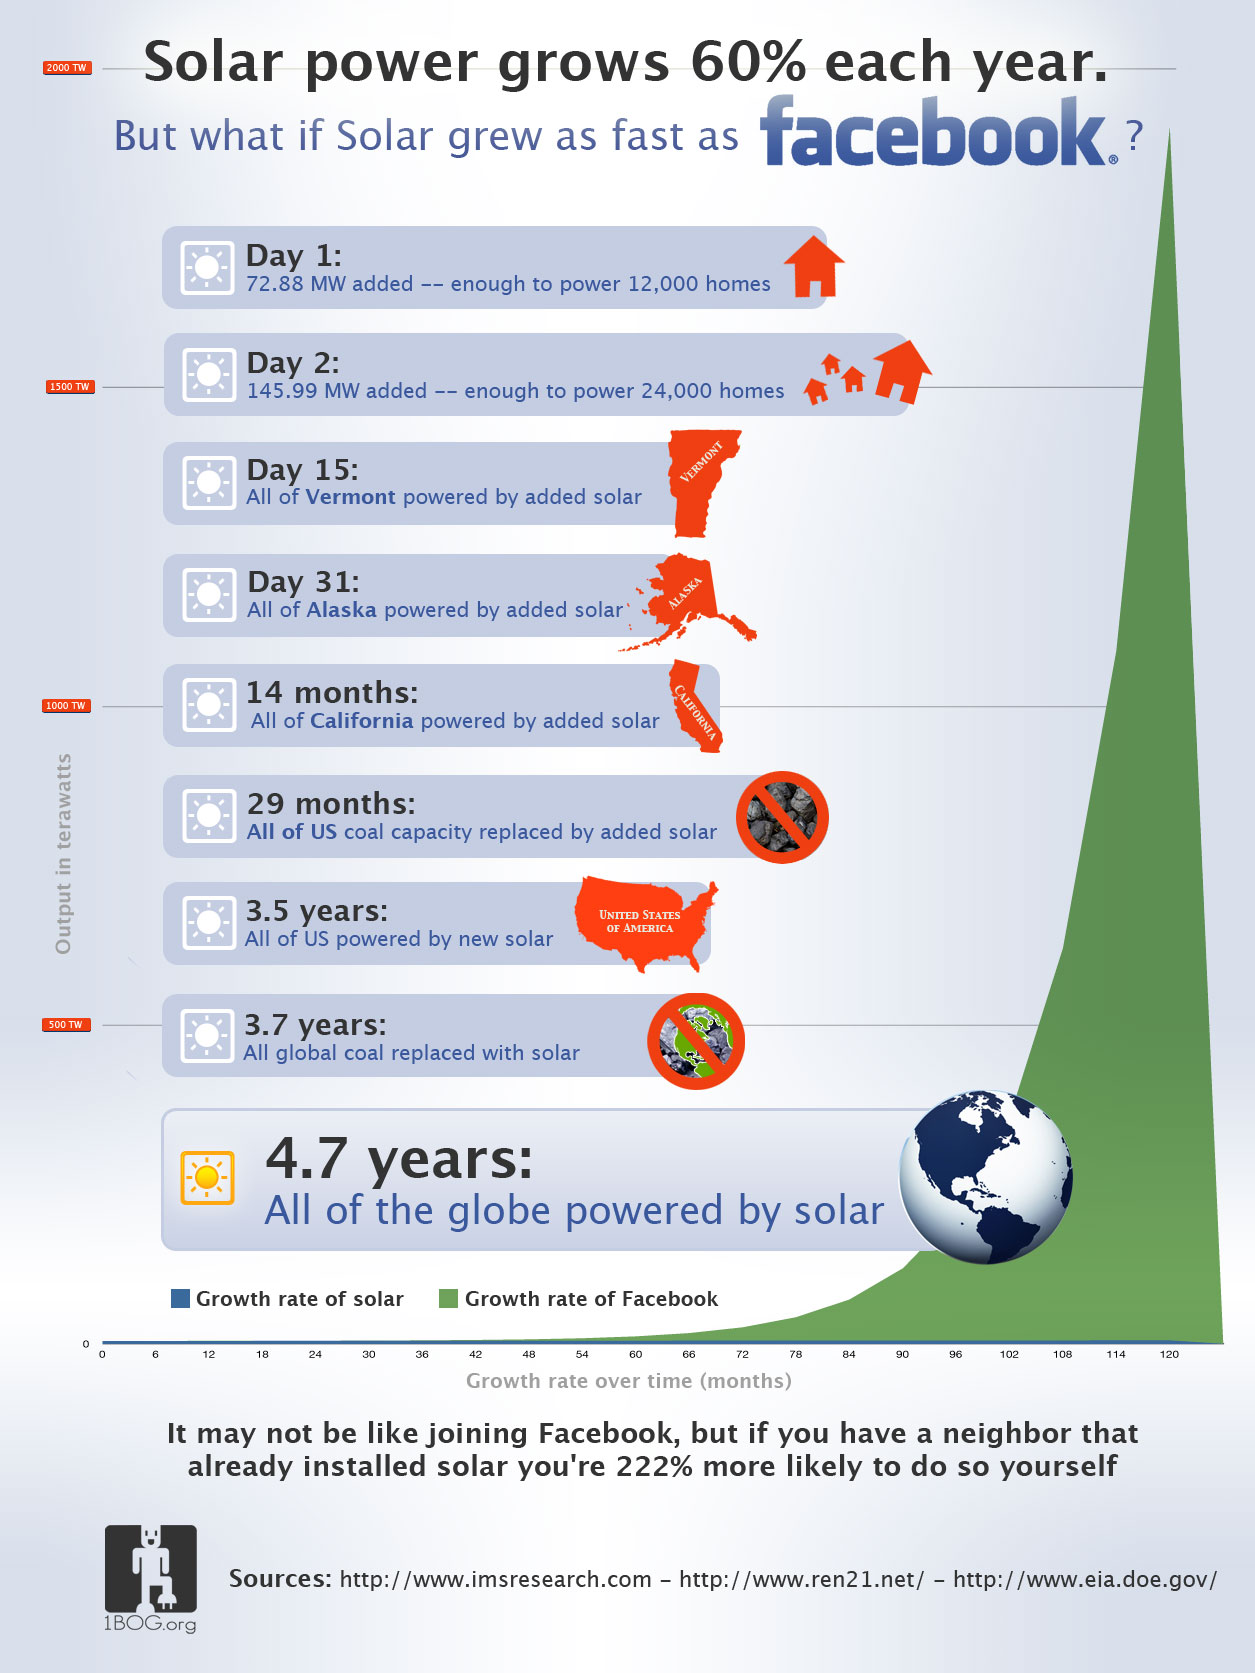 What if solar power grew as fast as Facebook